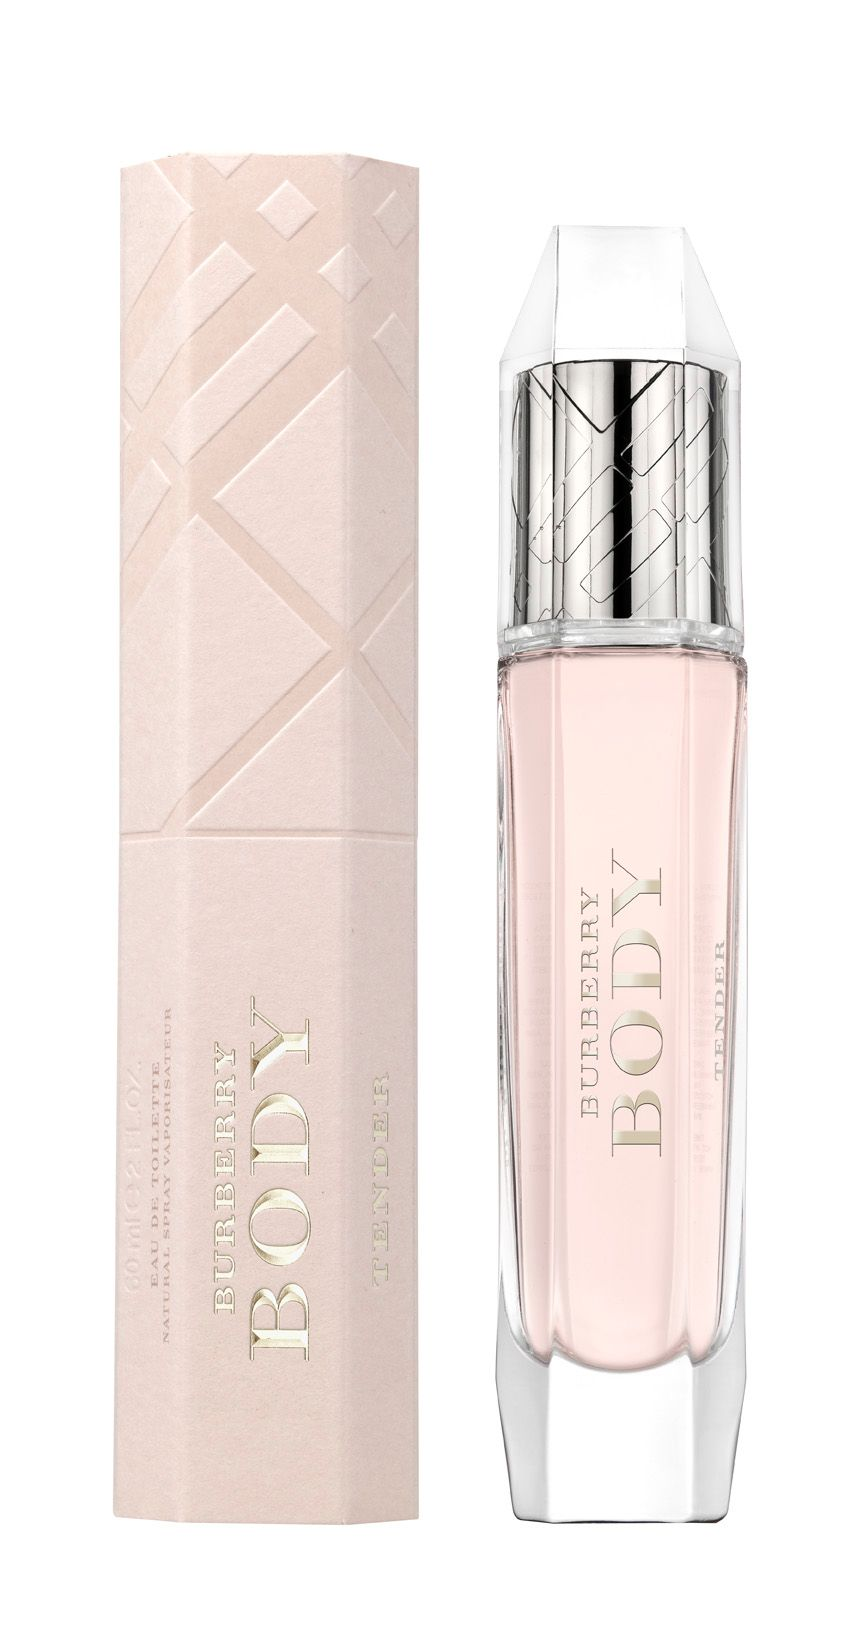 Burberry Body Tender Eau de Toilette 35ml